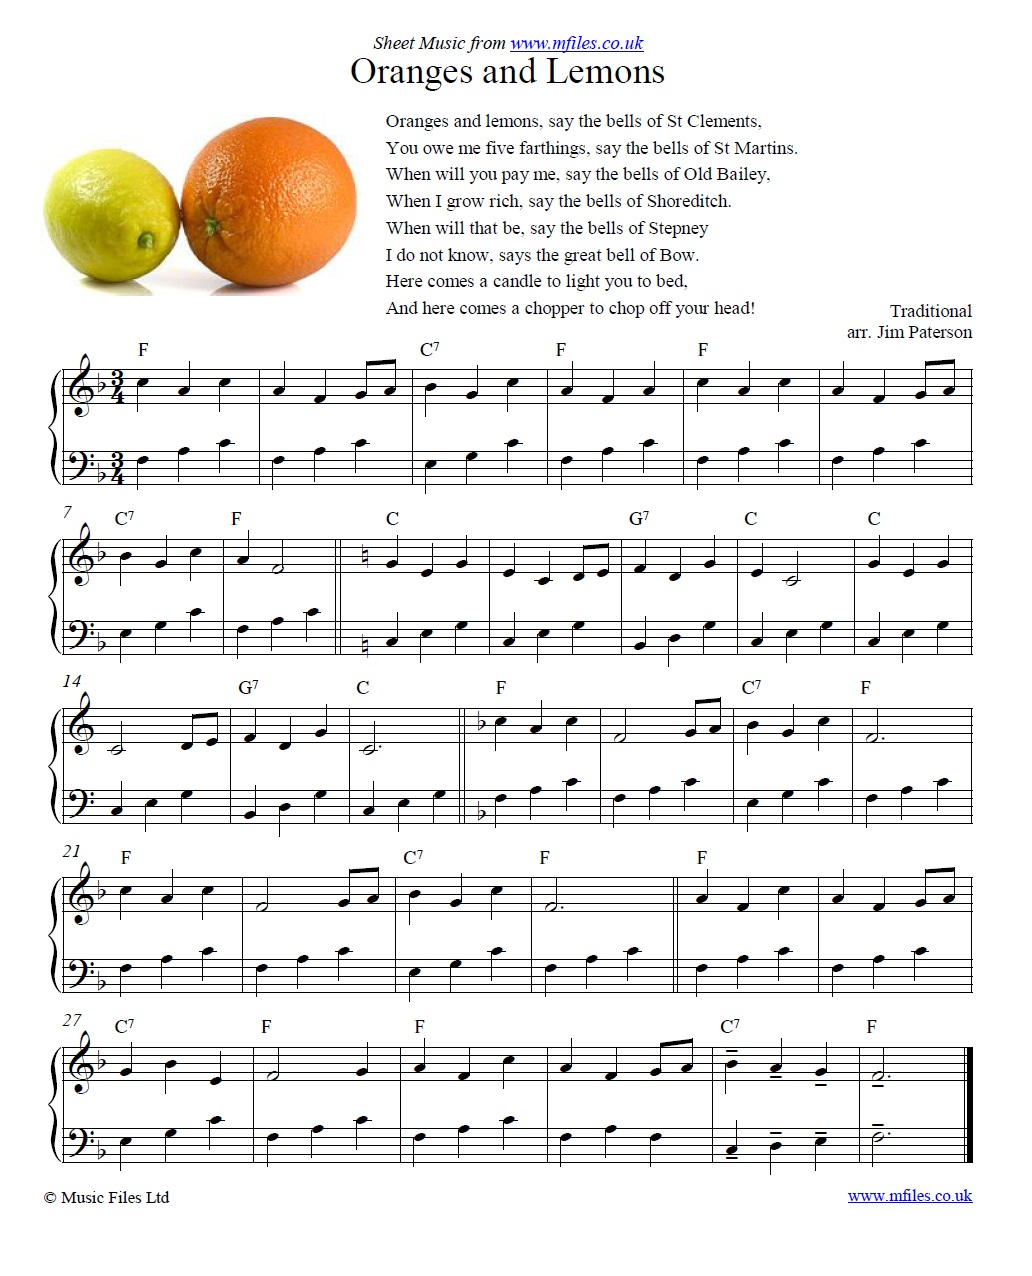 Oranges and Lemons for piano - sheet music 1st page